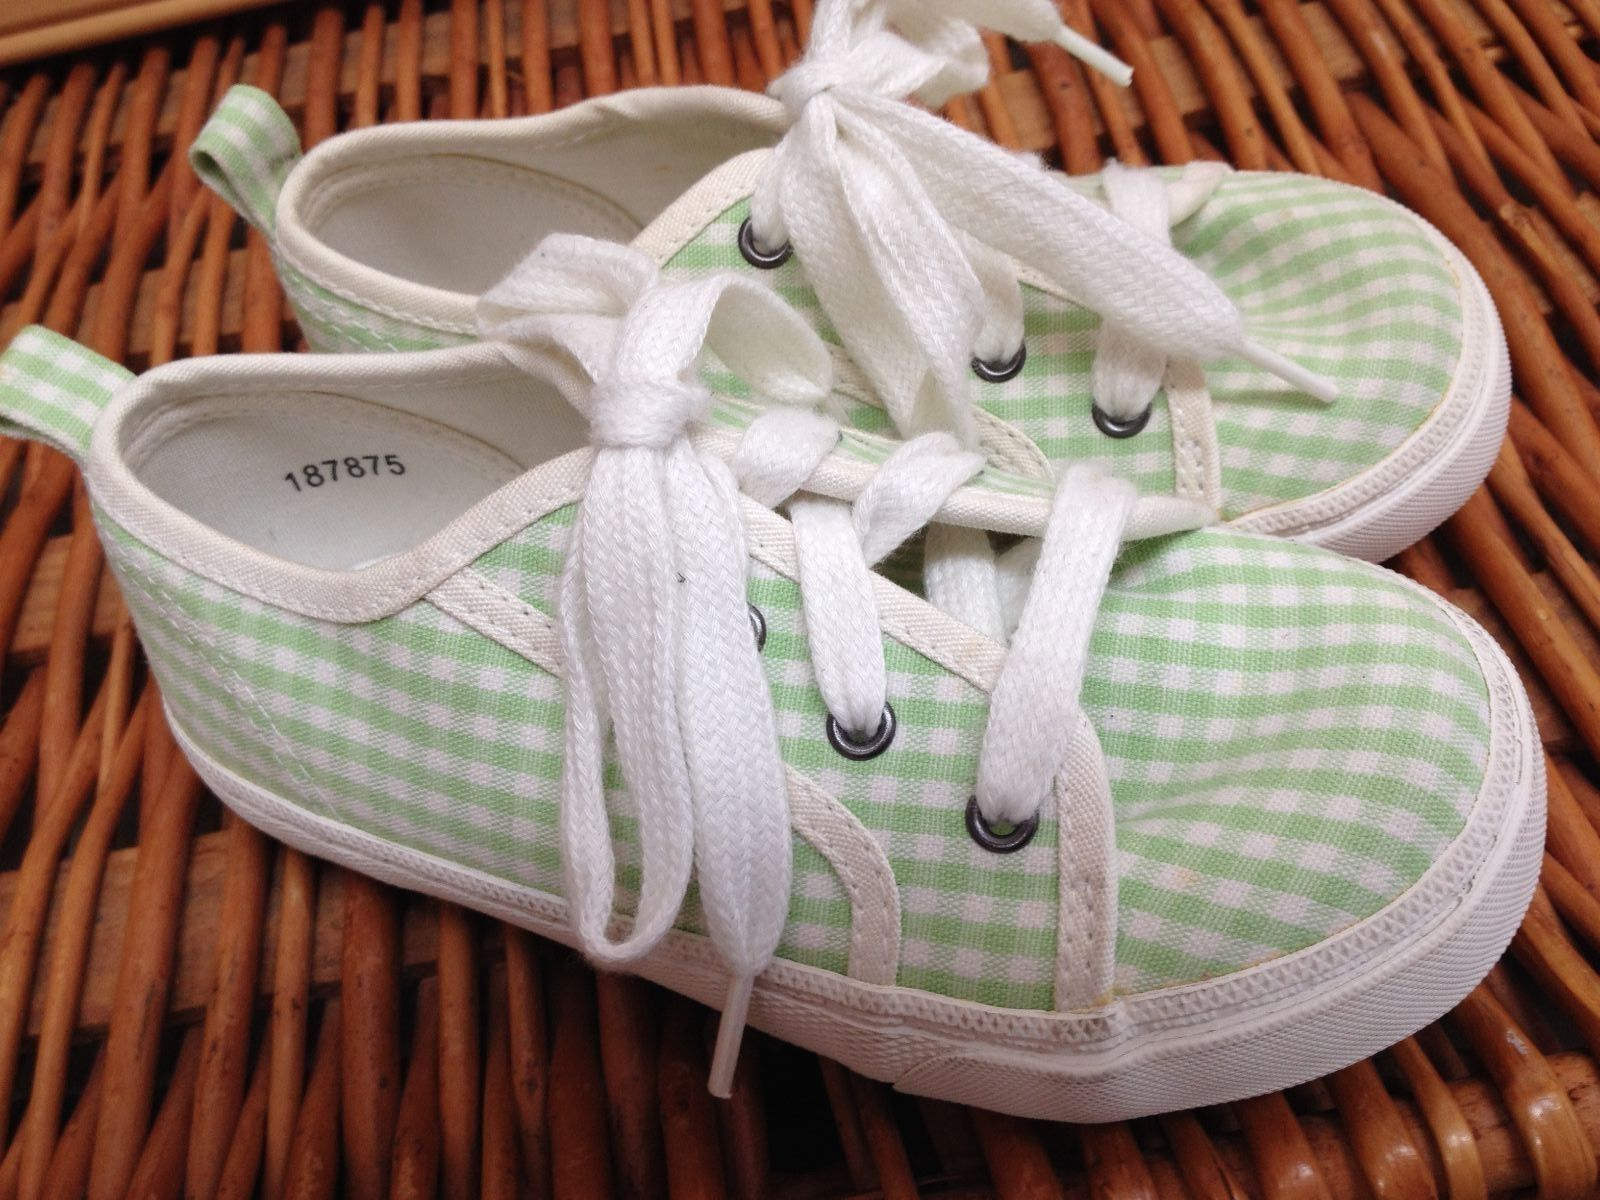 Classic KIDS GINGHAM SNEAKERS tennis shoe green 10 11 girls boys unisex NEW GAP